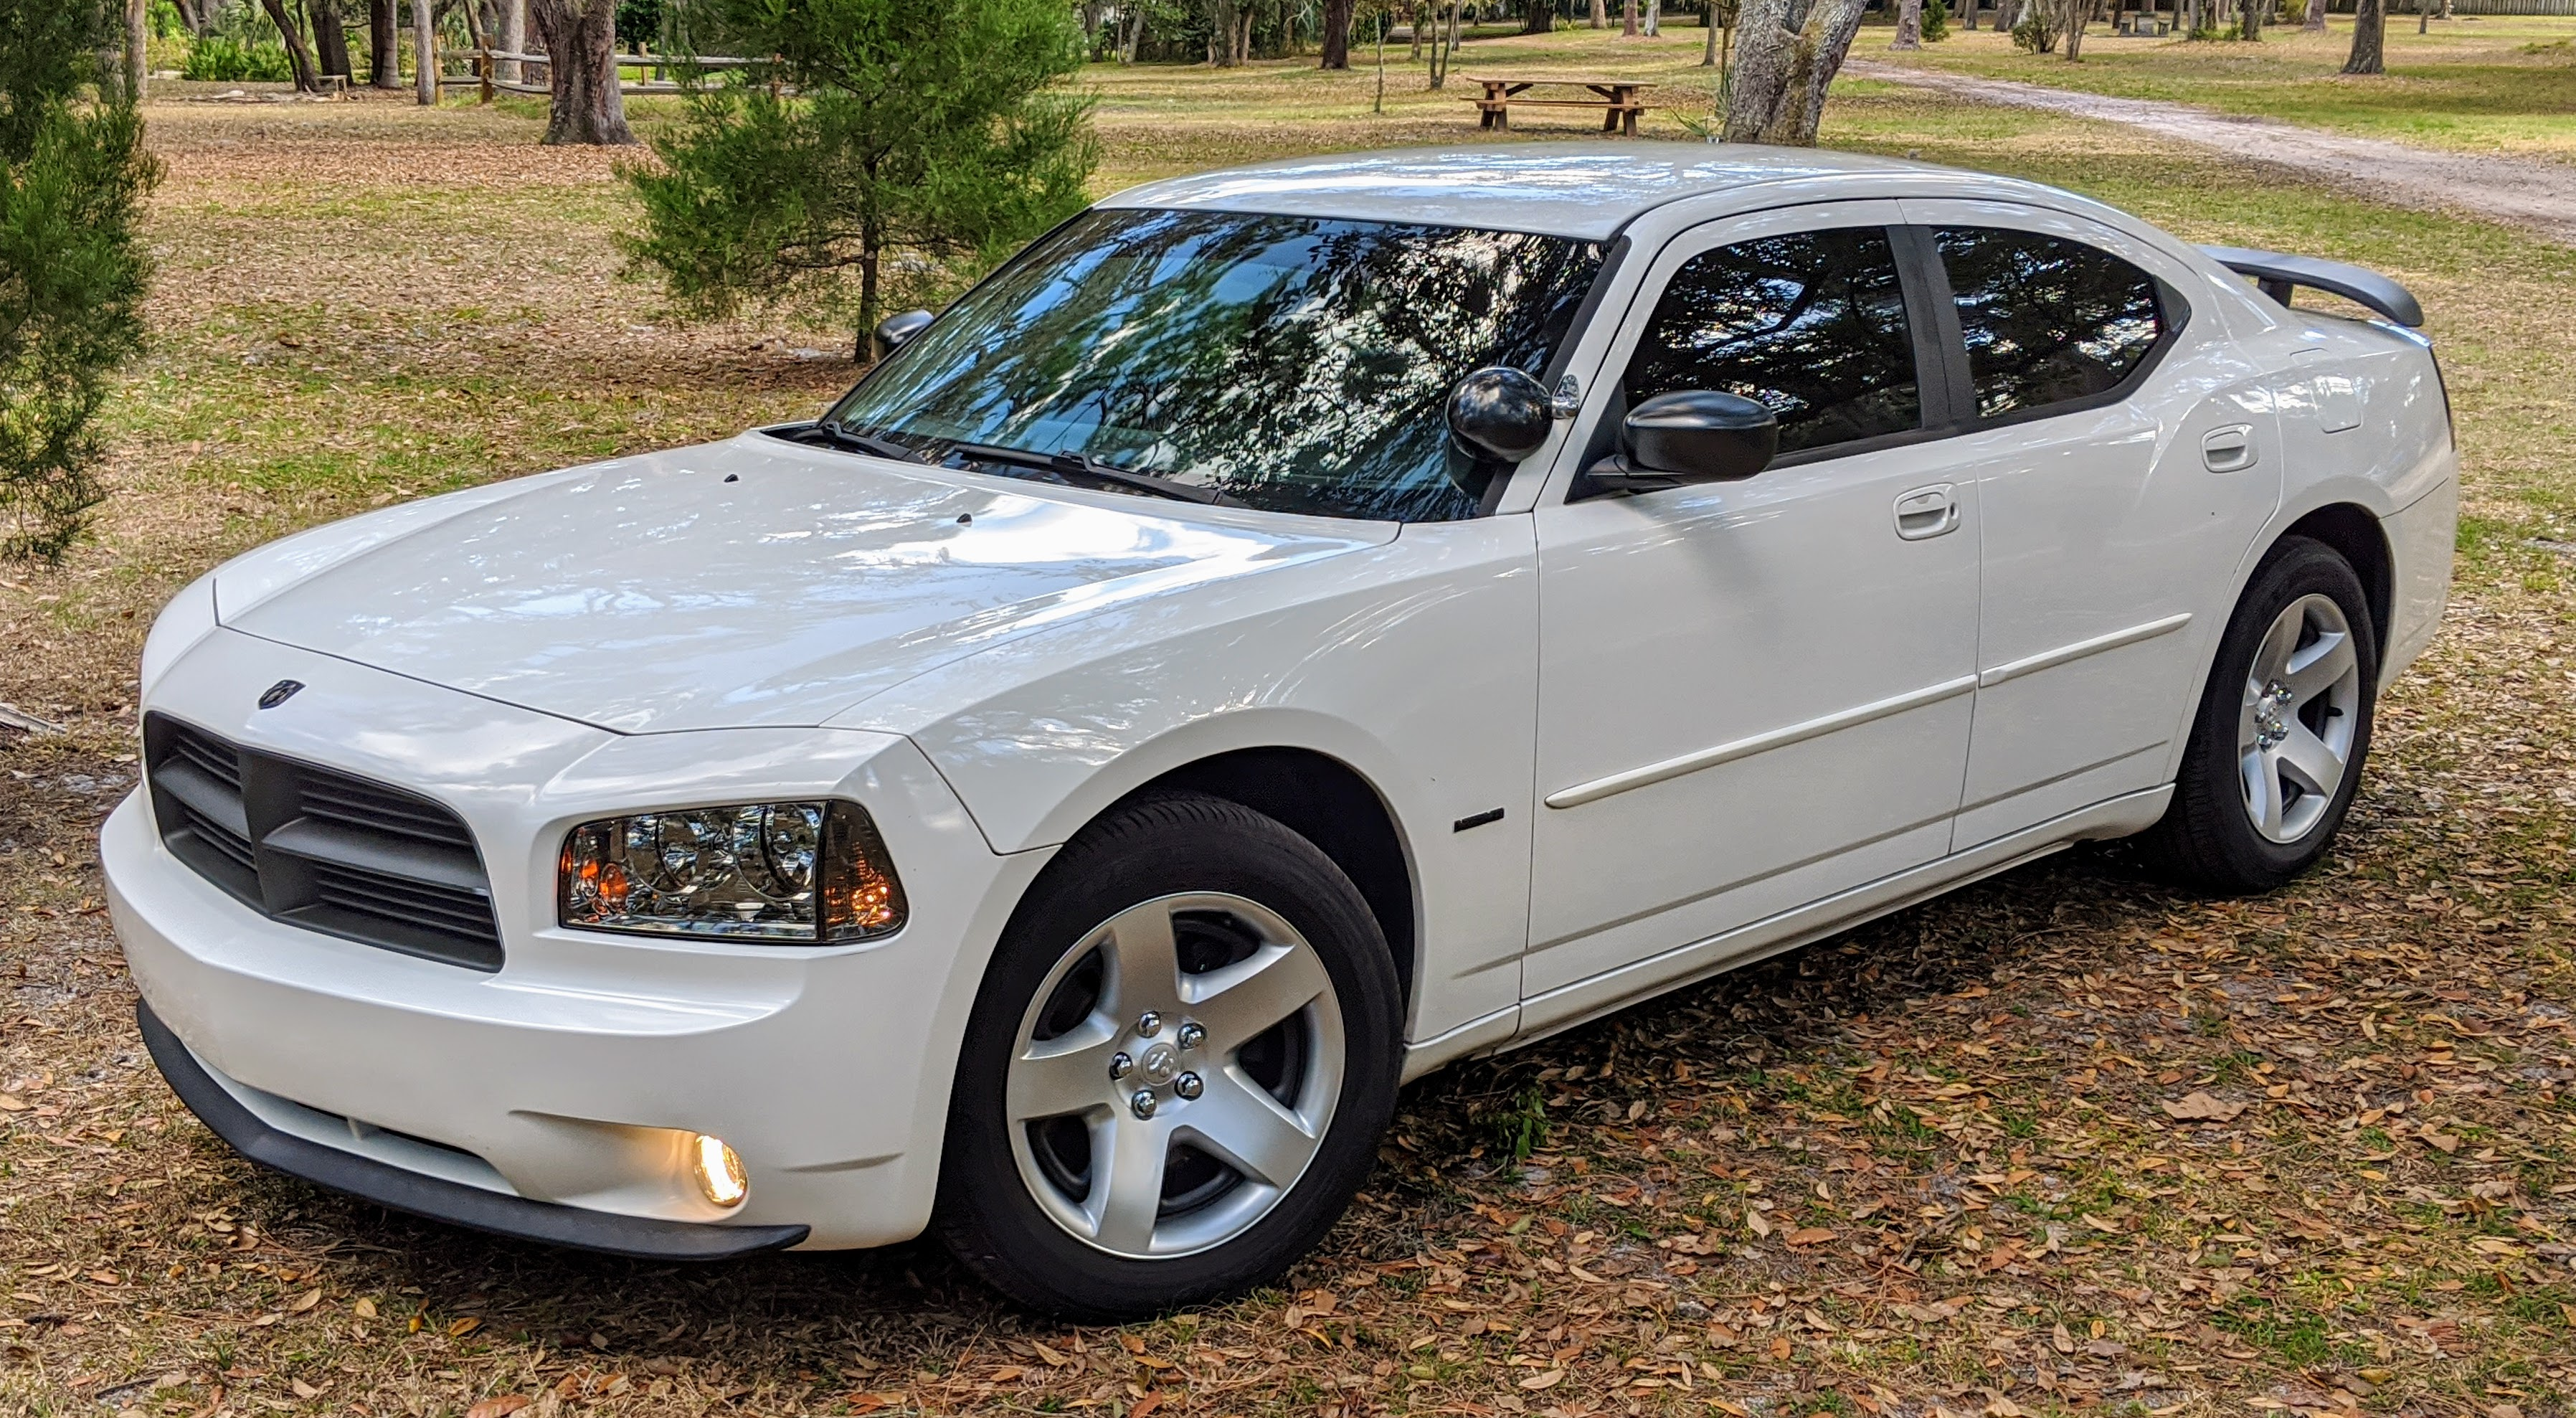 2006 Hemi Charger Custom Pursuit - The Chief (Price Reduced!)